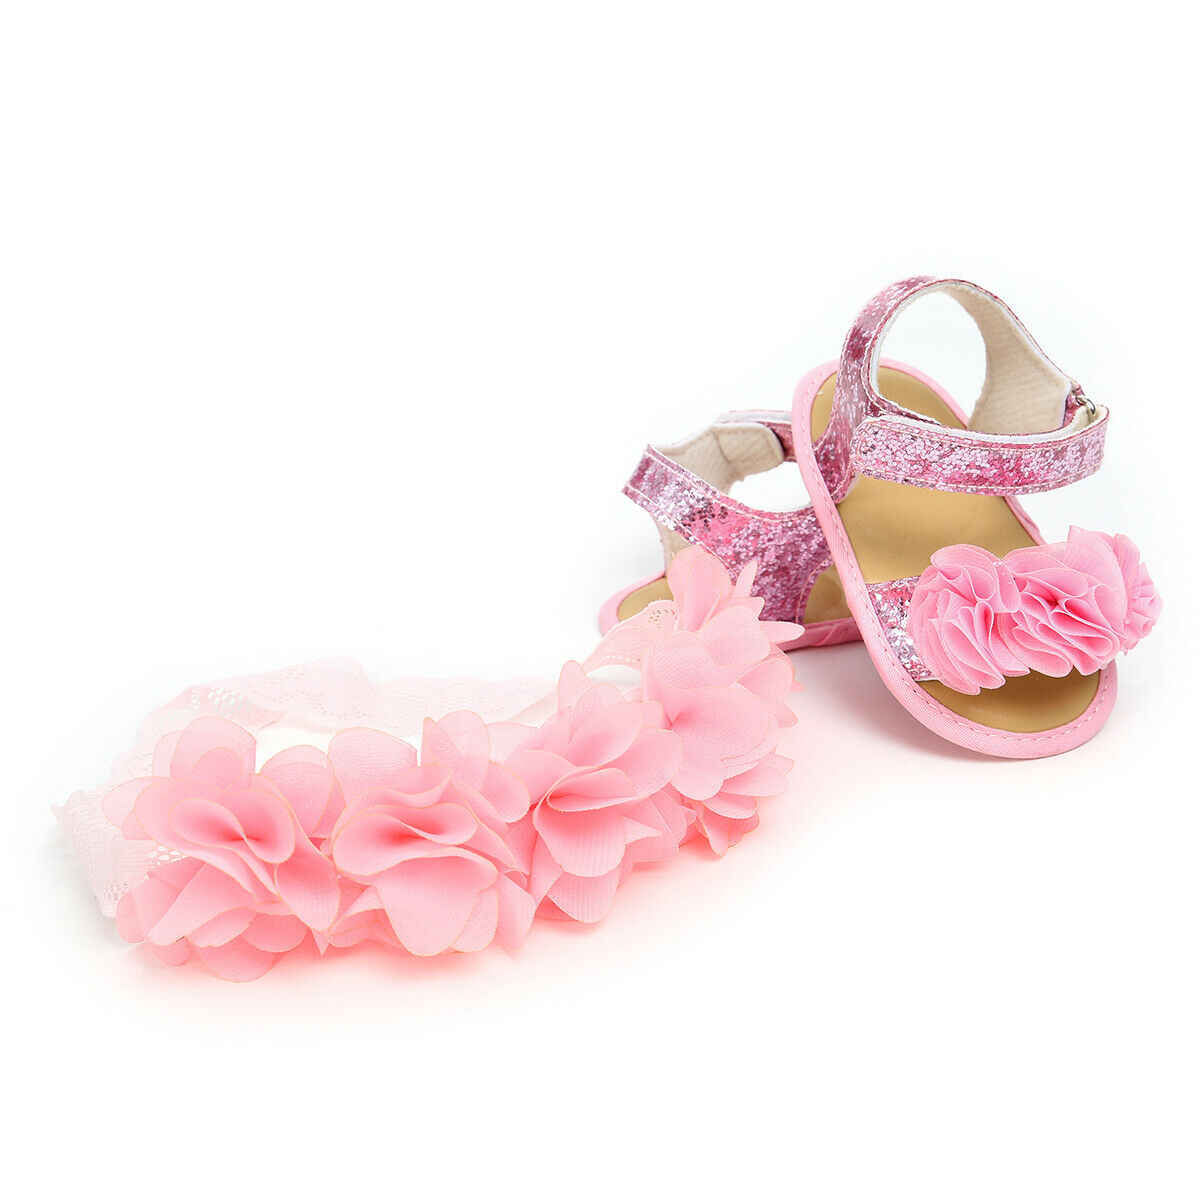 2019 Baby Summer Clothing Newborn Kid Baby Girl Flower Sandals Shoes Soft Sole Hook Casual Summer Shoes +Headband 2Pcs Solid Set